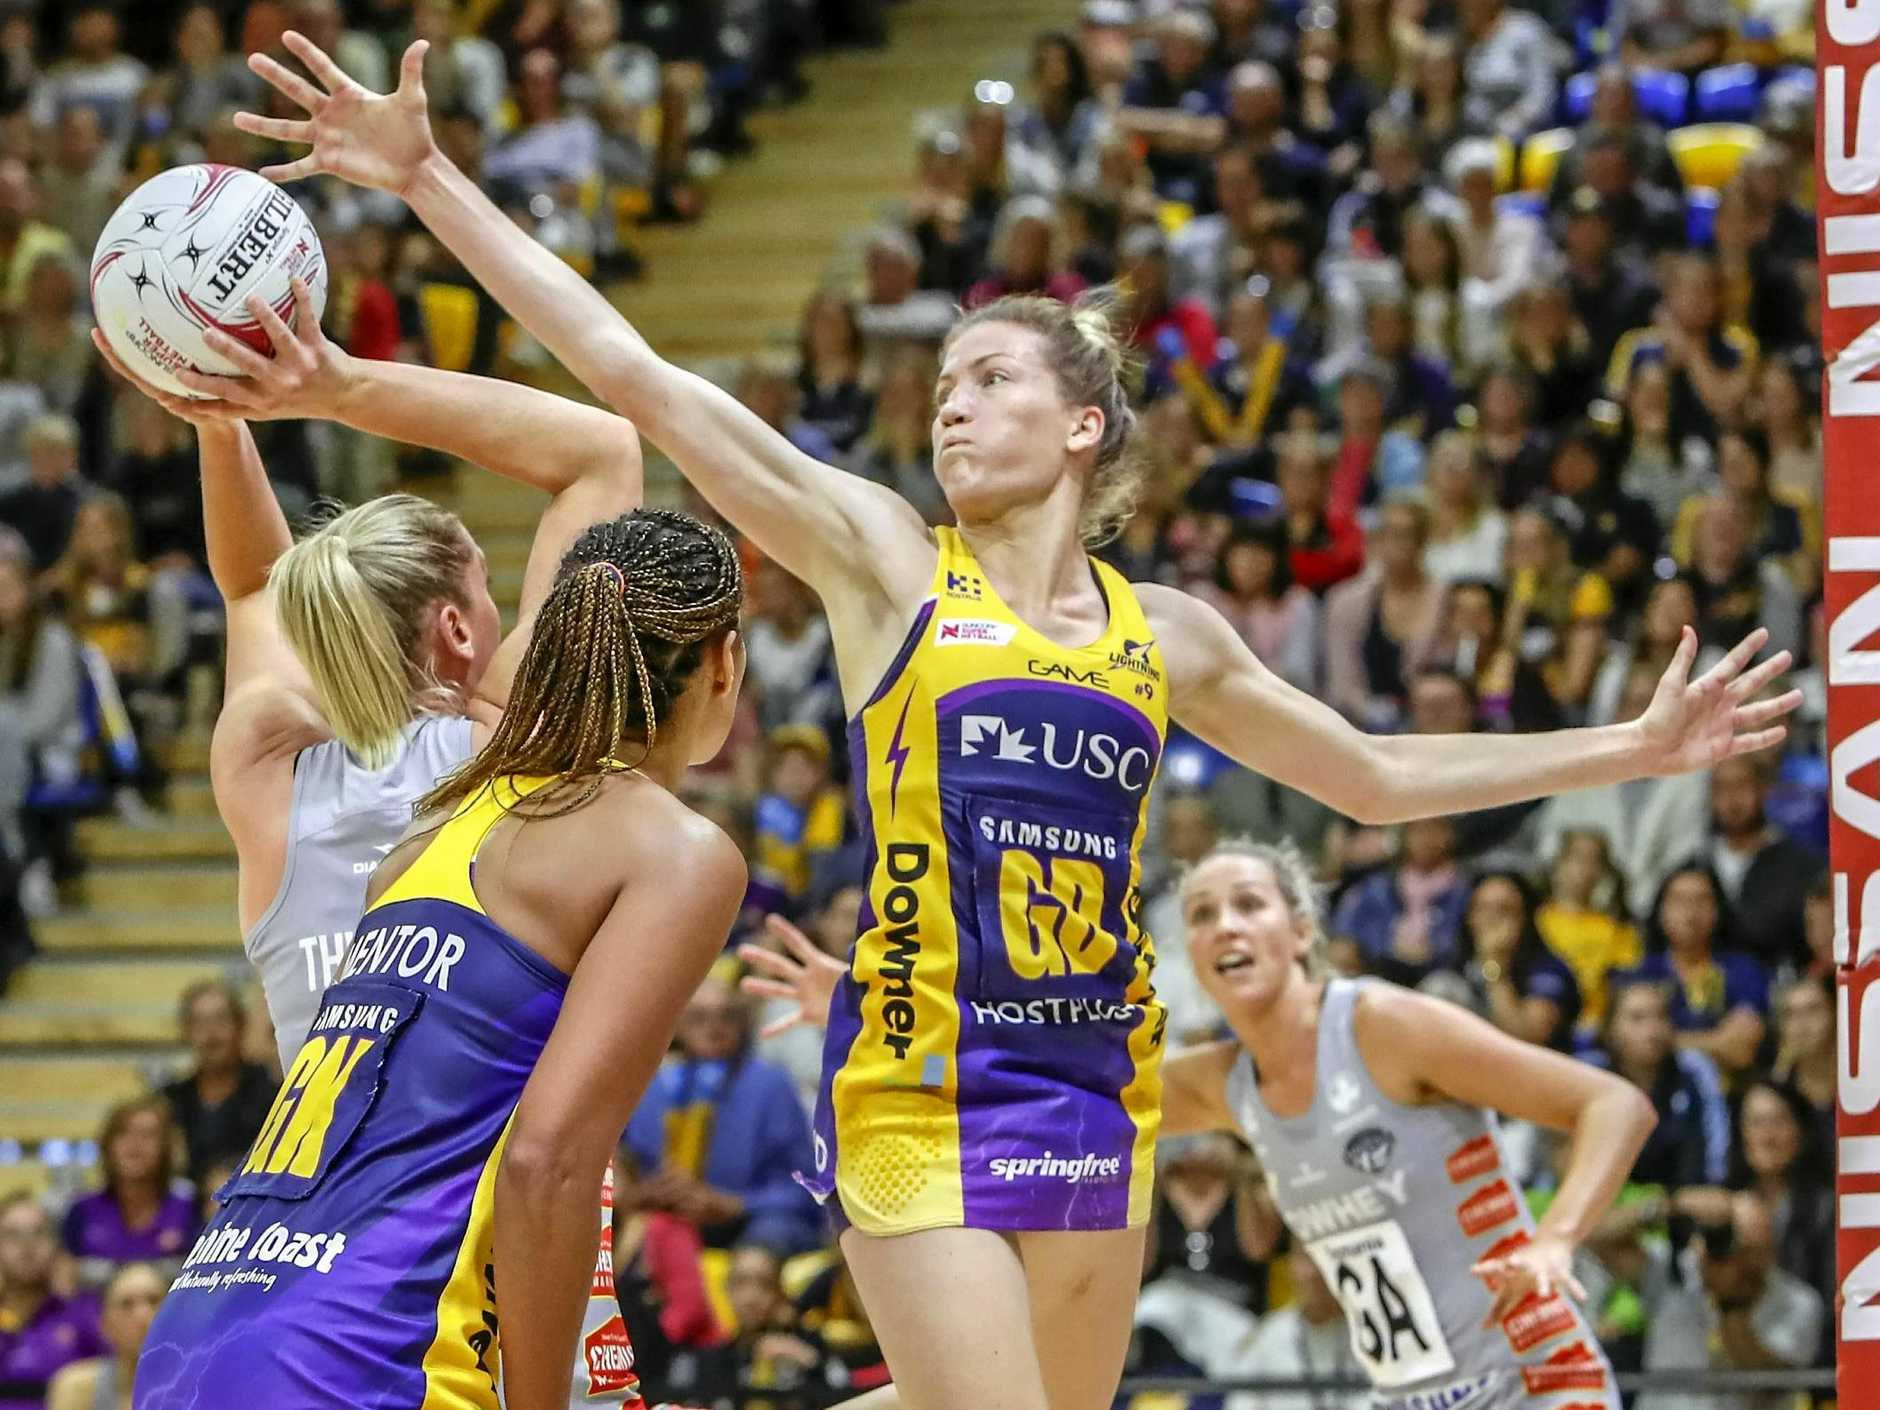 Karla Pretorius of the Lightning attempts to block a shot during the Round 11 Super Netball match between the Sunshine Coast Lightning and the Collingwood Magpies  at the University of the Sunshine Coast Sports Stadium in Sippy Downs, Queensland, Saturday, July 14, 2018. (AAP Image/Glenn Hunt) NO ARCHIVING, EDITORIAL USE ONLY